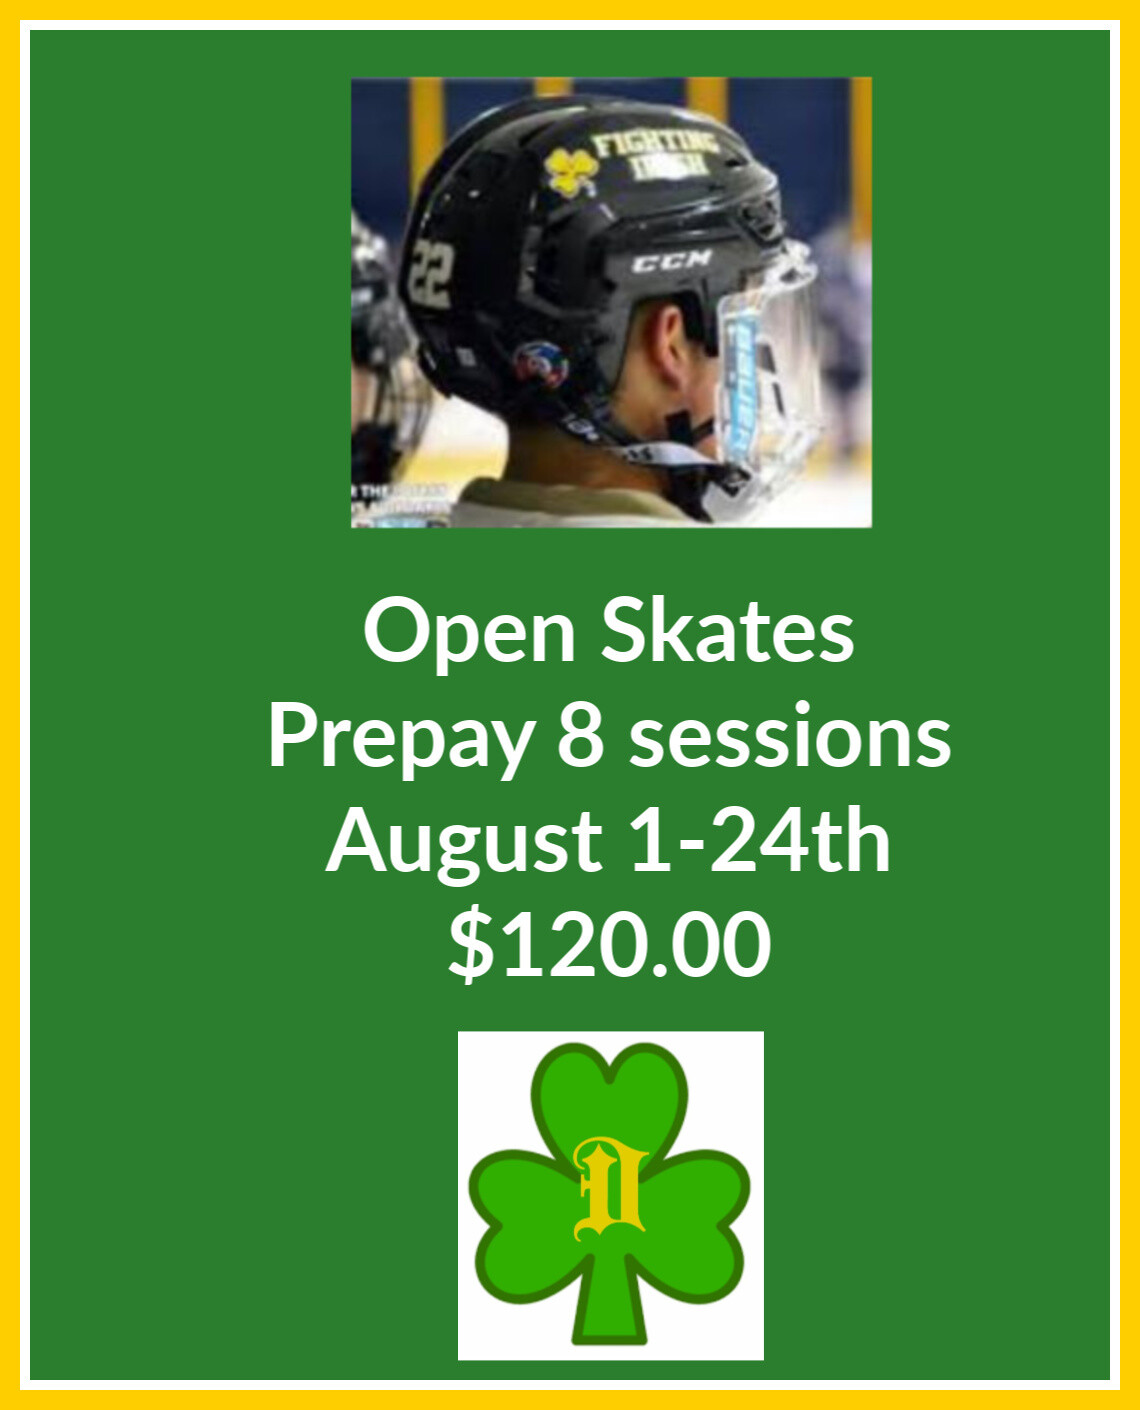 OPEN SKATE  AUGUST 1 * 24 Southgate Civic Arena